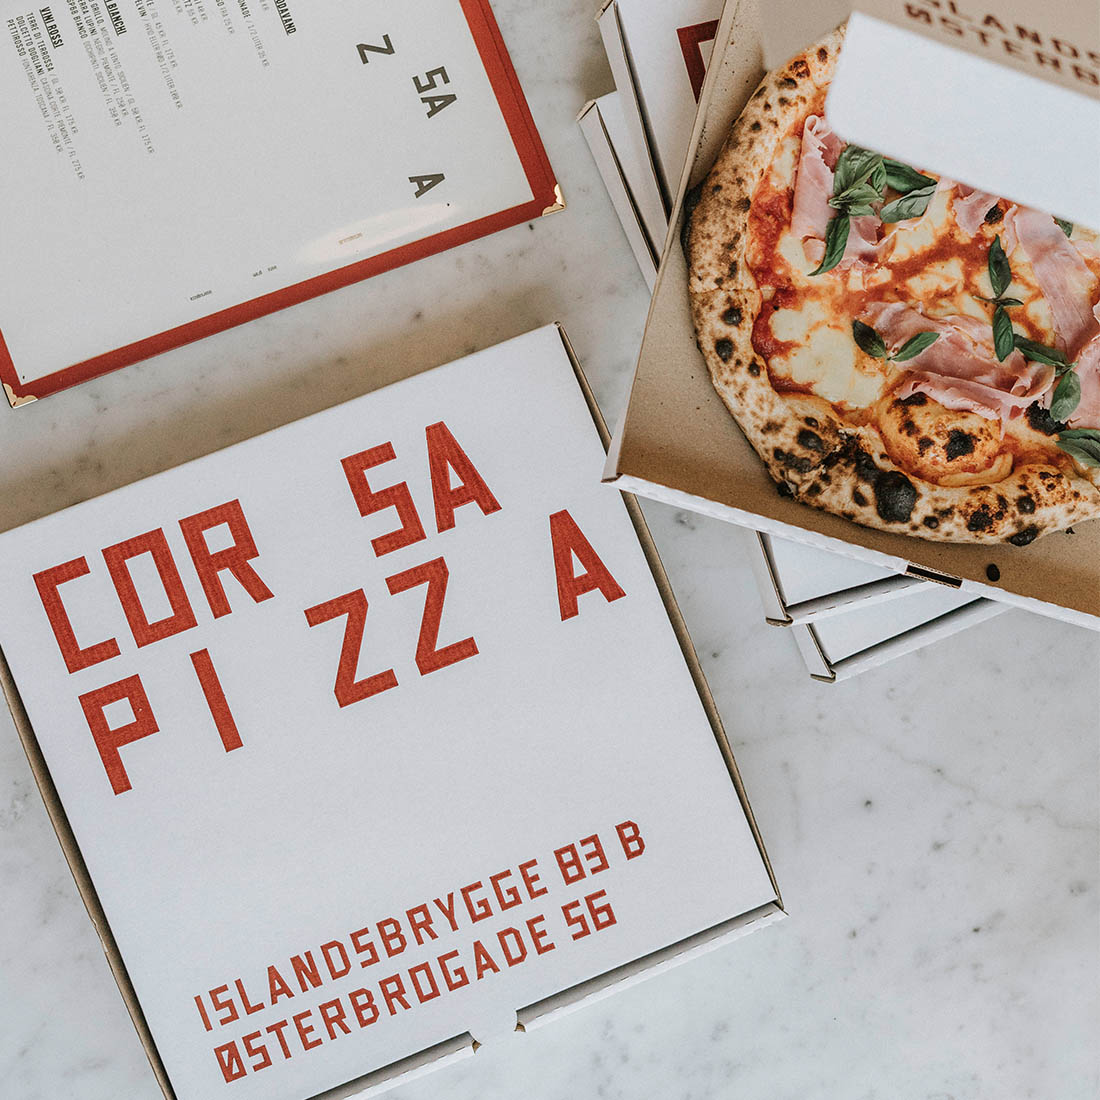 For Corsa Pizza we have produced white pizza boxes with a characteristic red print.